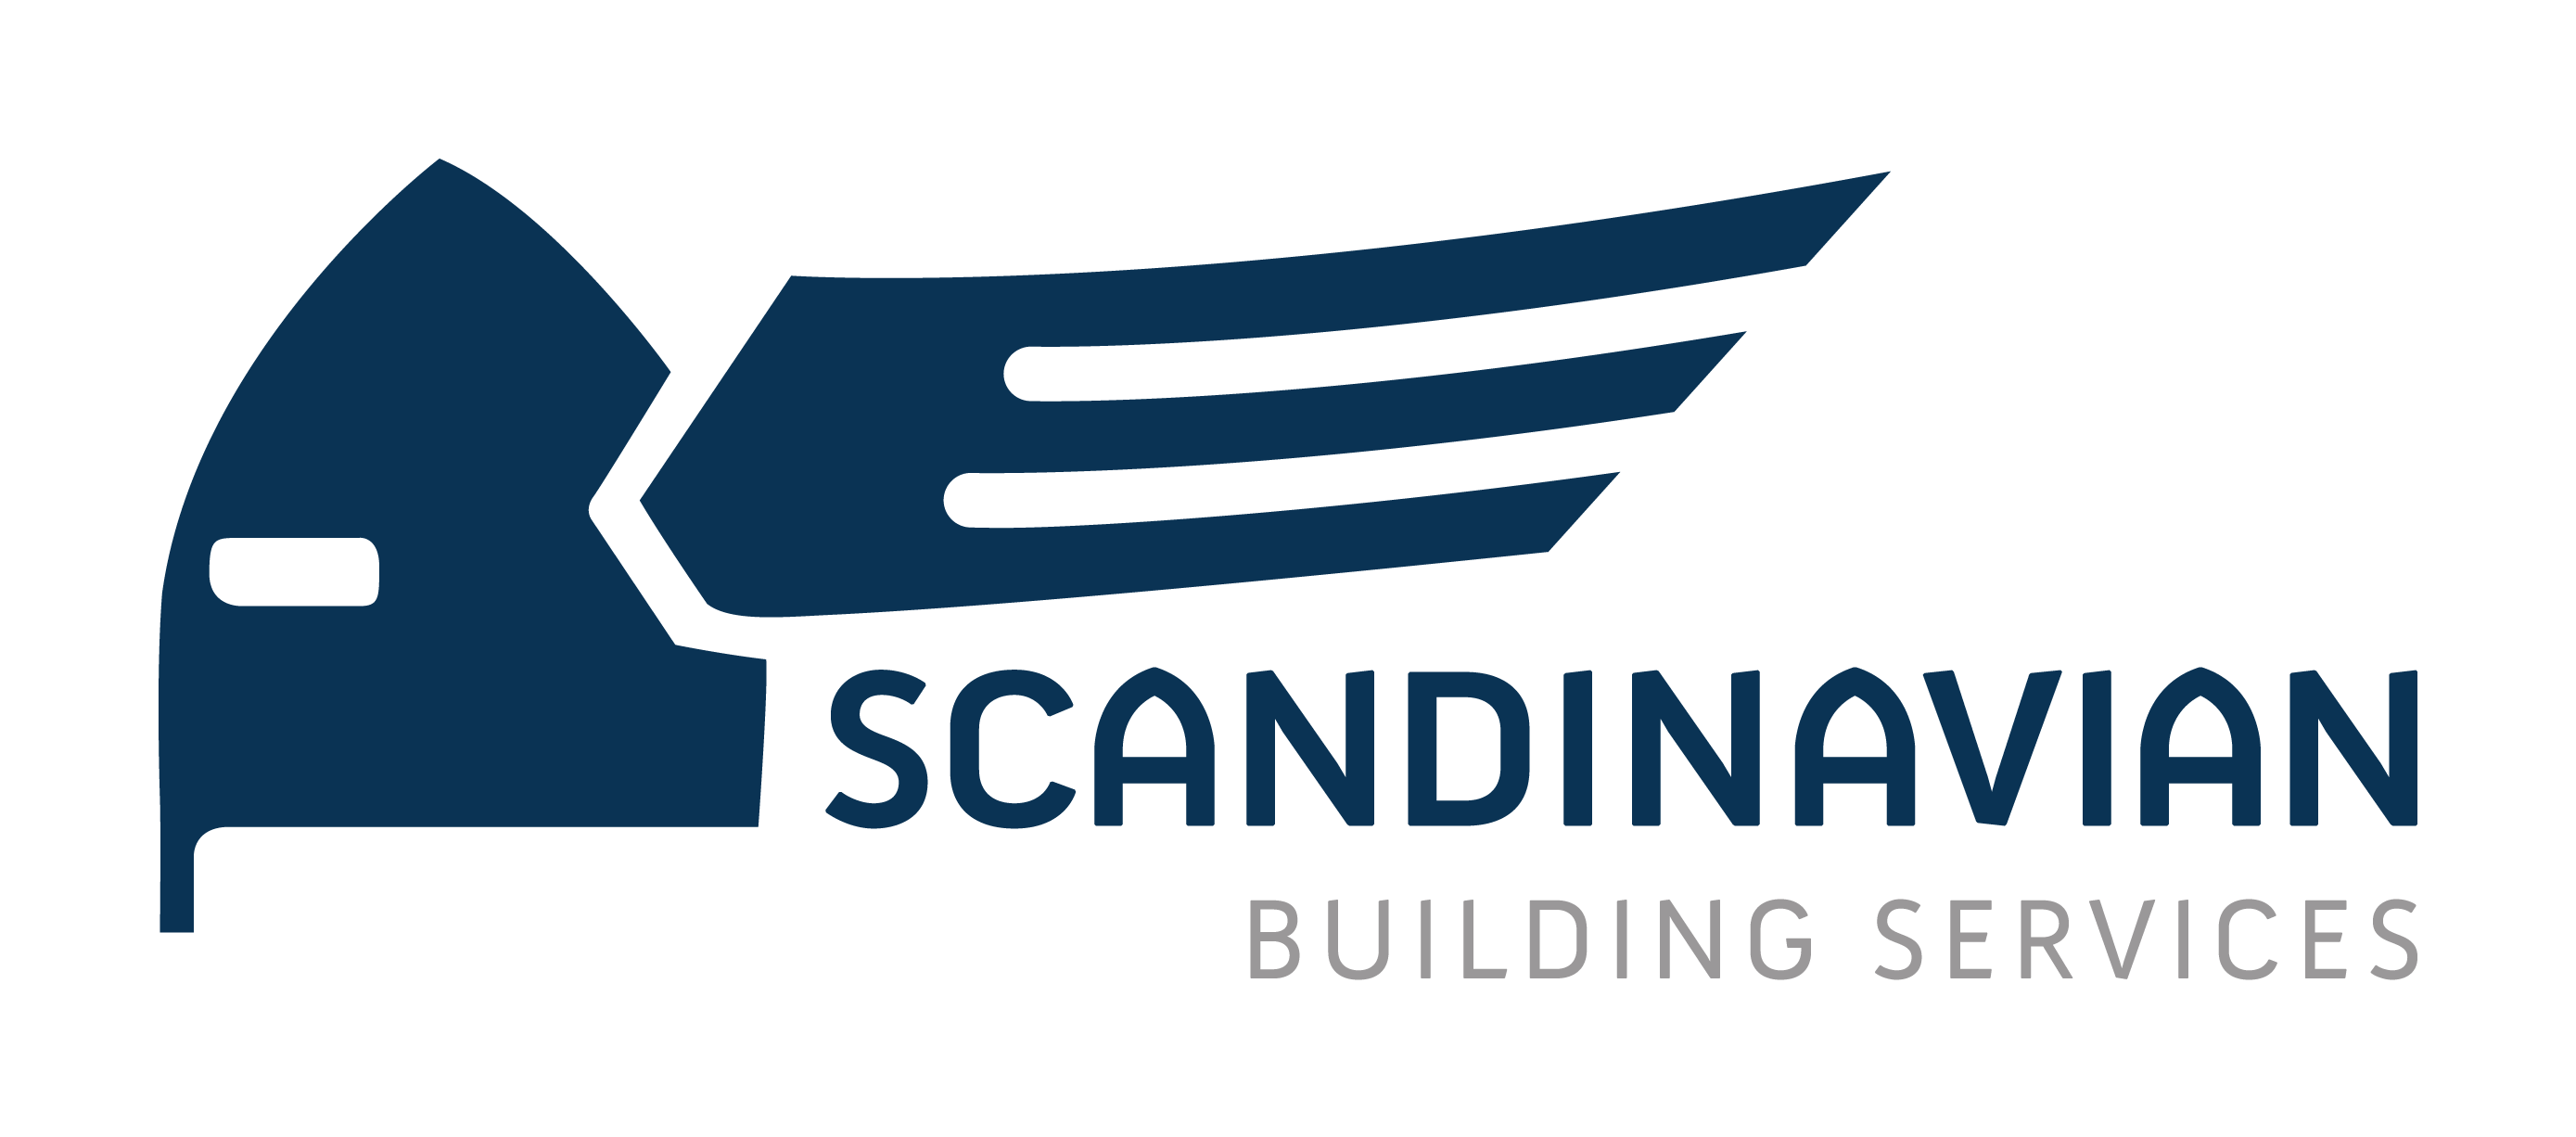 Commercial cleaning, janitors, maintenance - Scandinavian